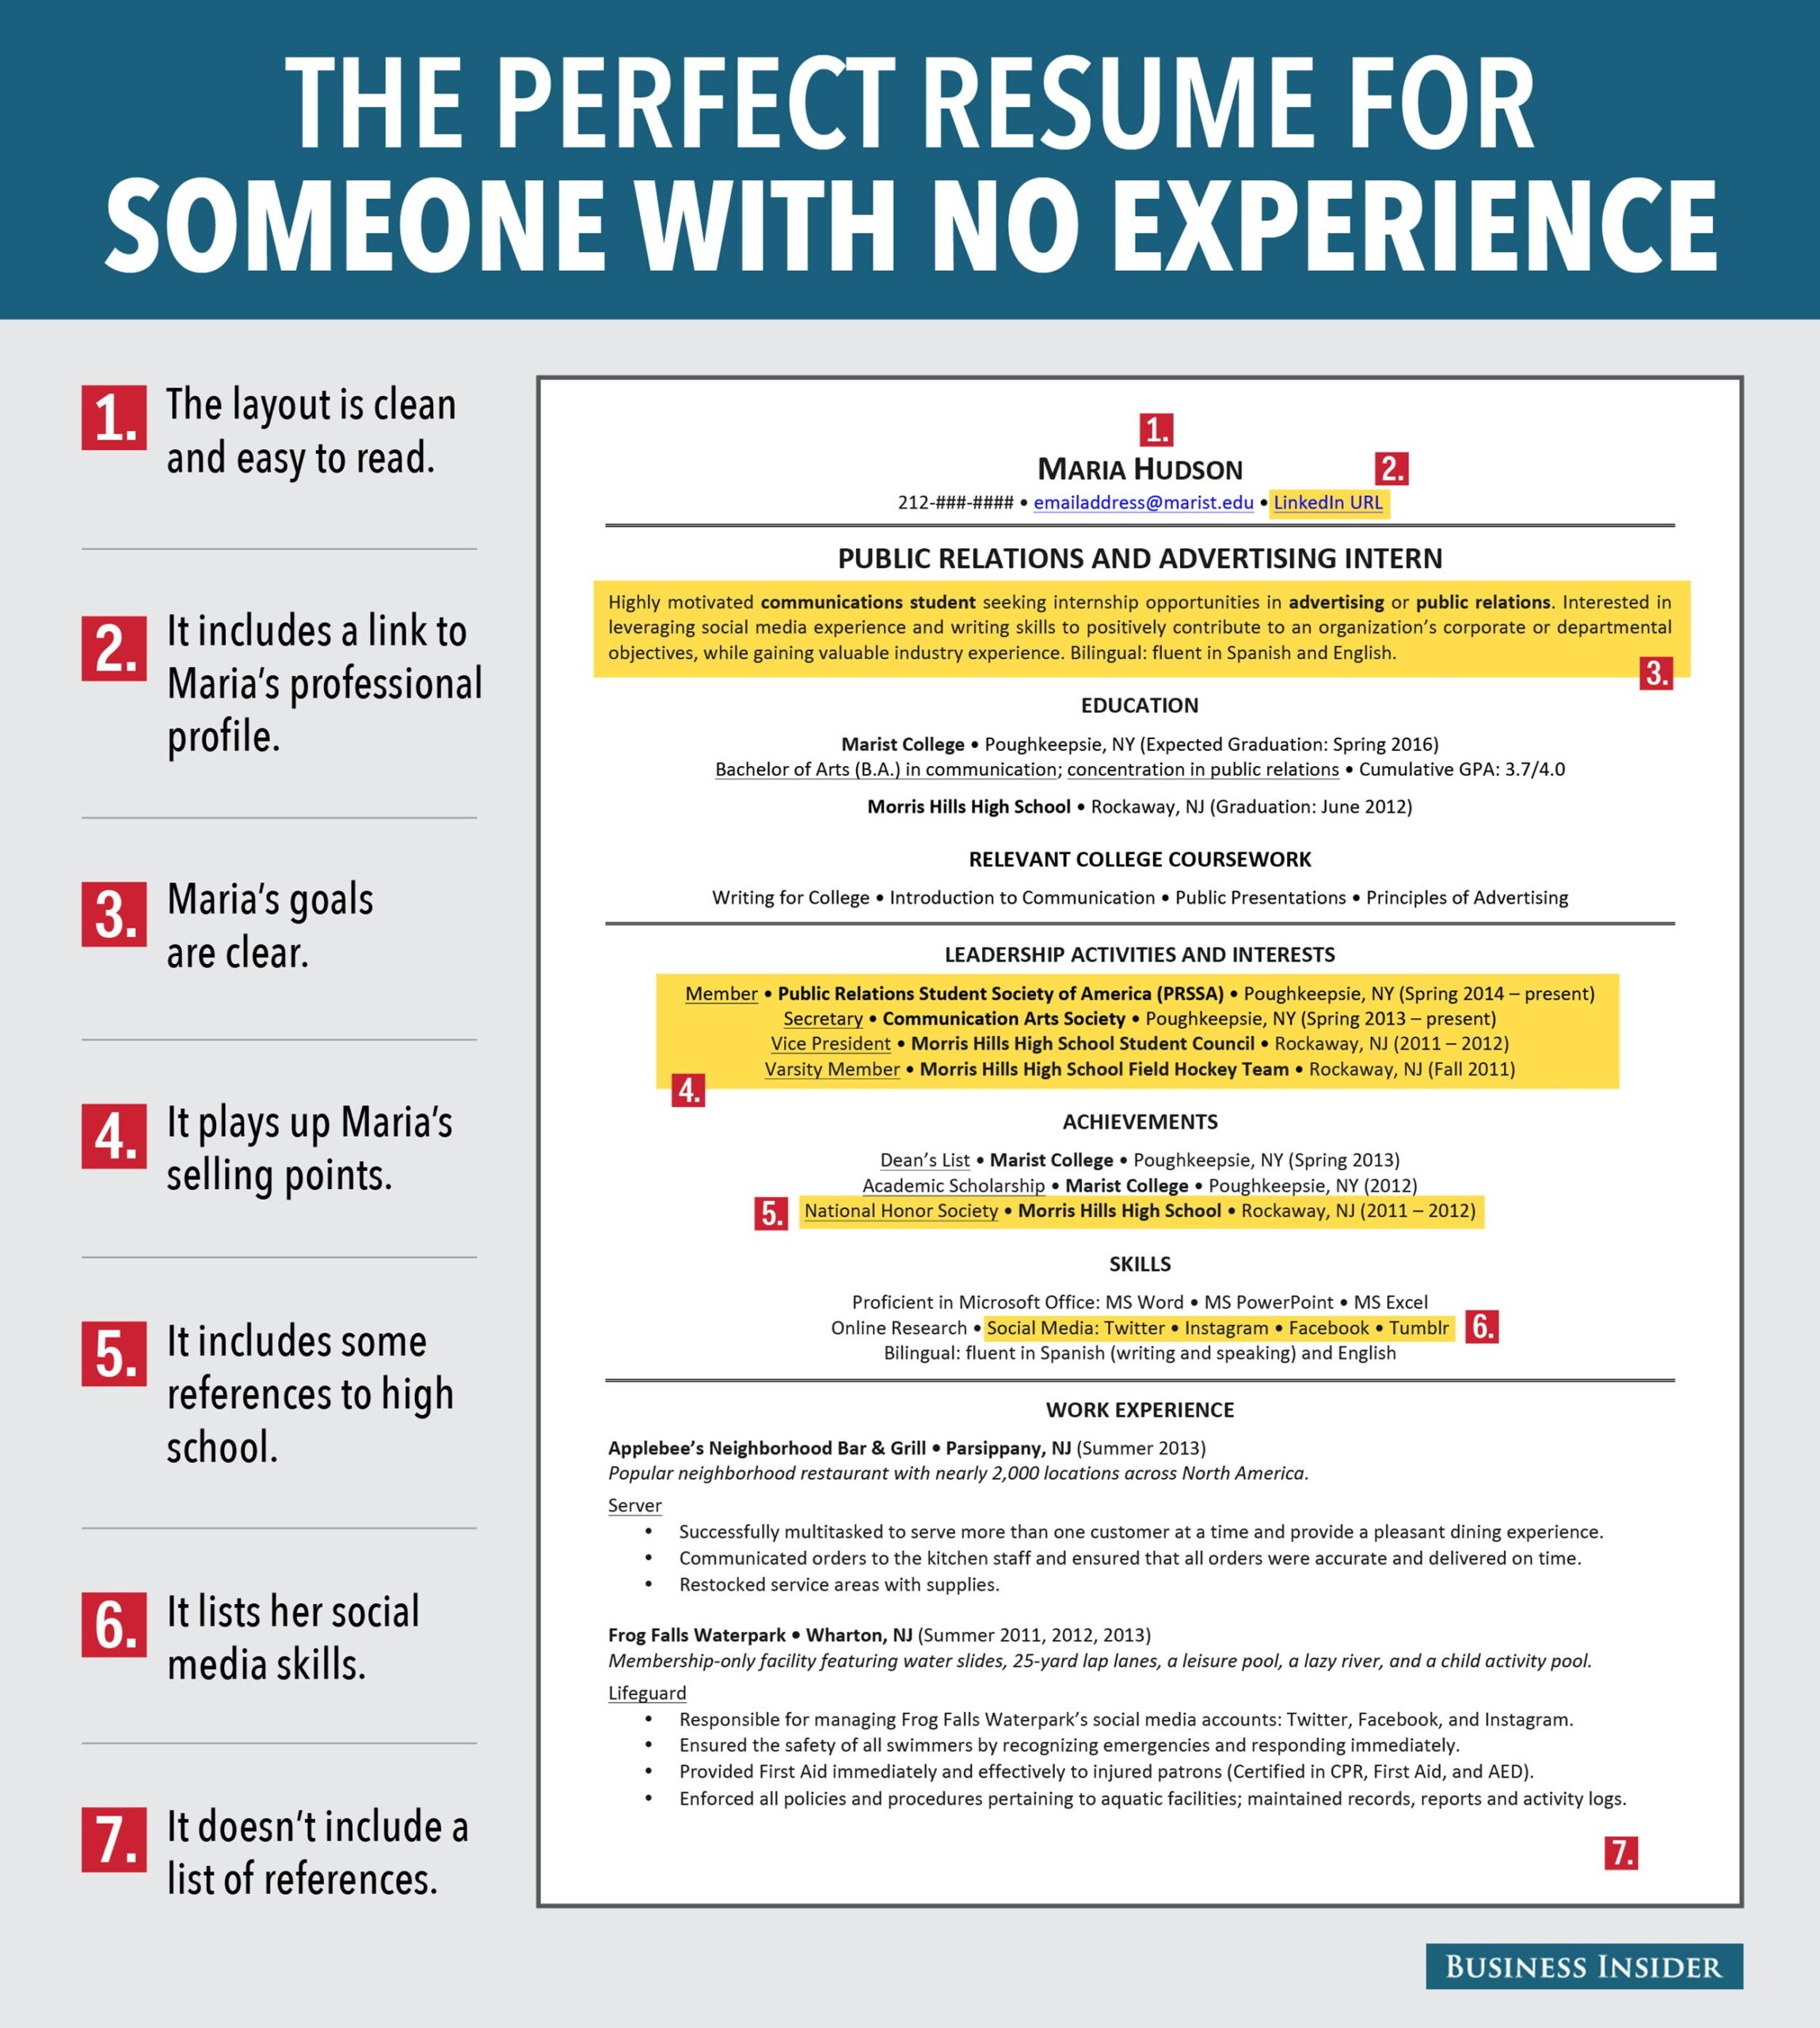 resume for job seeker with no experience business insider sample college student little Resume Sample Resume College Student Little Work Experience